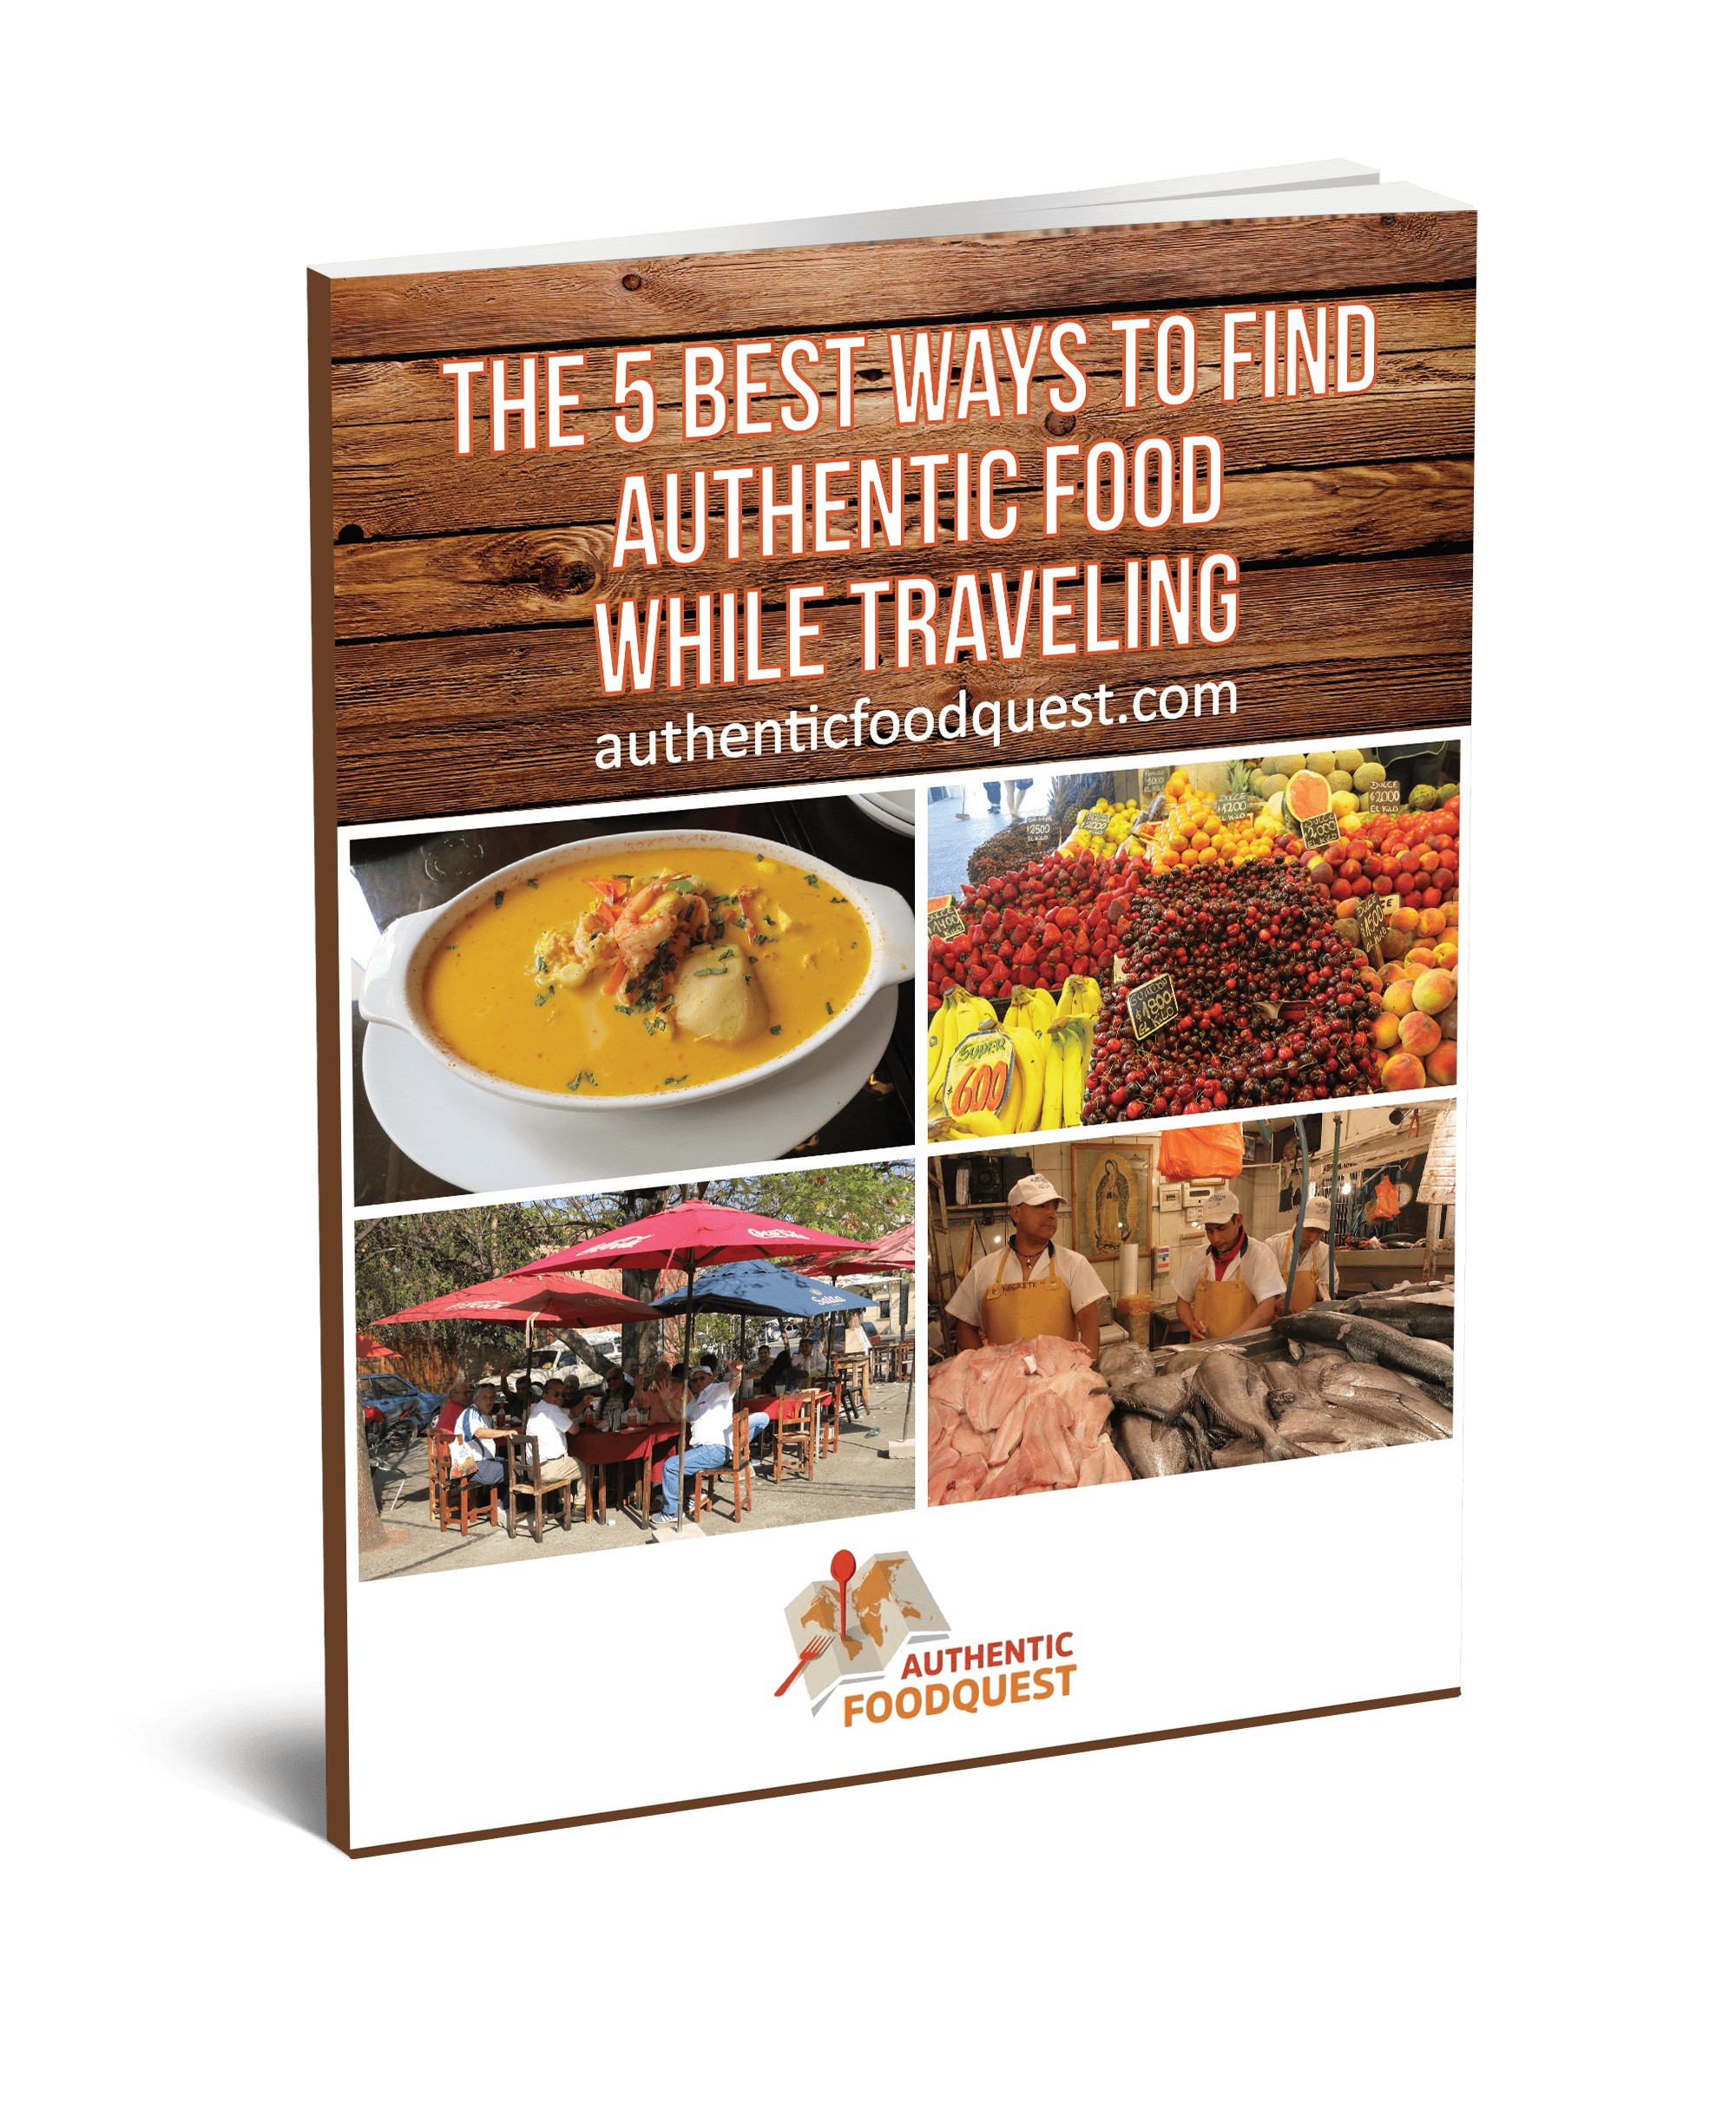 Authentic Food Experiences - Authentic Restaurant Experiences